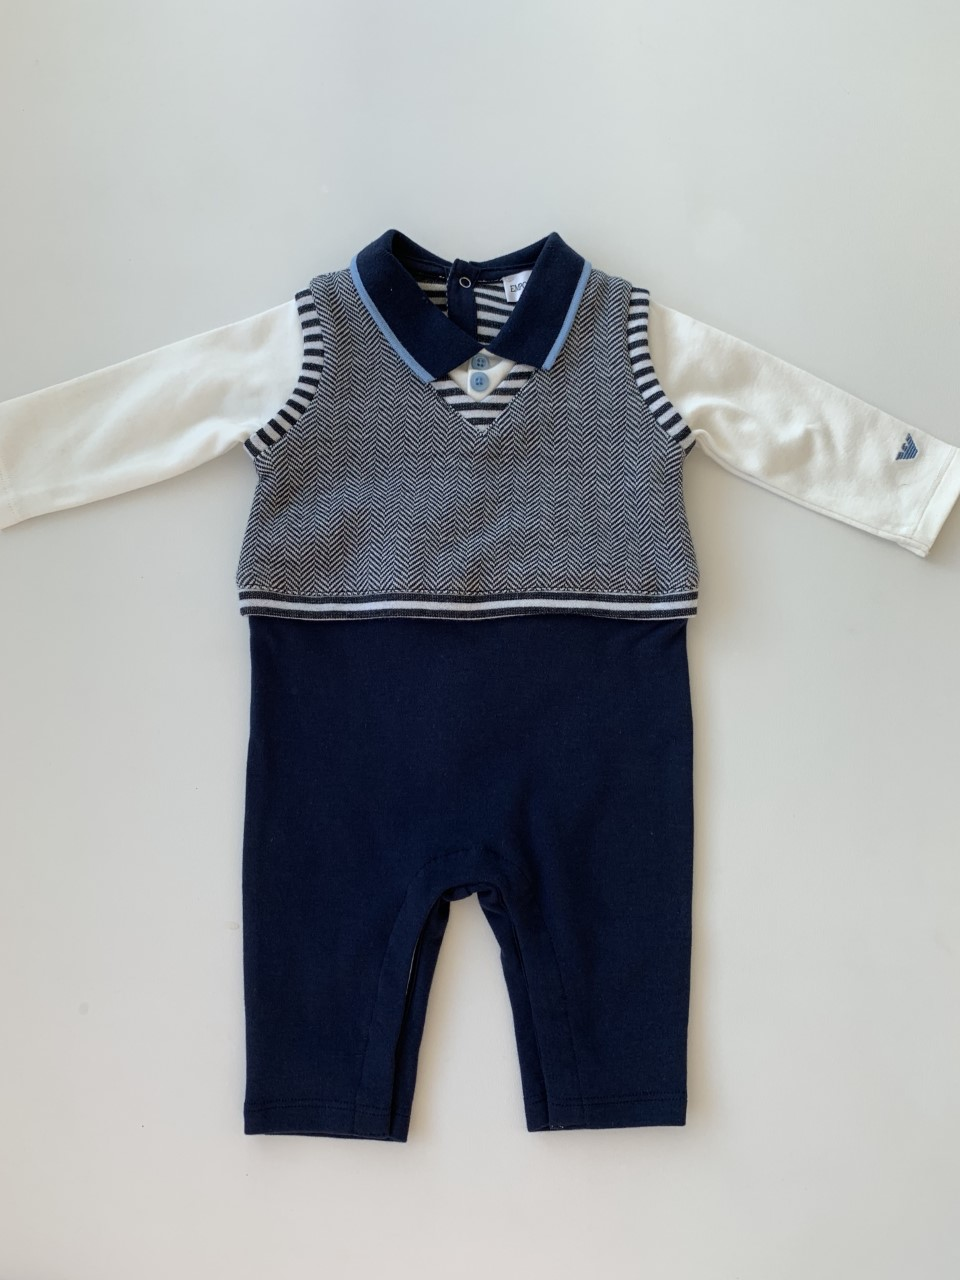 JUMPSUIT/Boys   3 moths up to 12 months